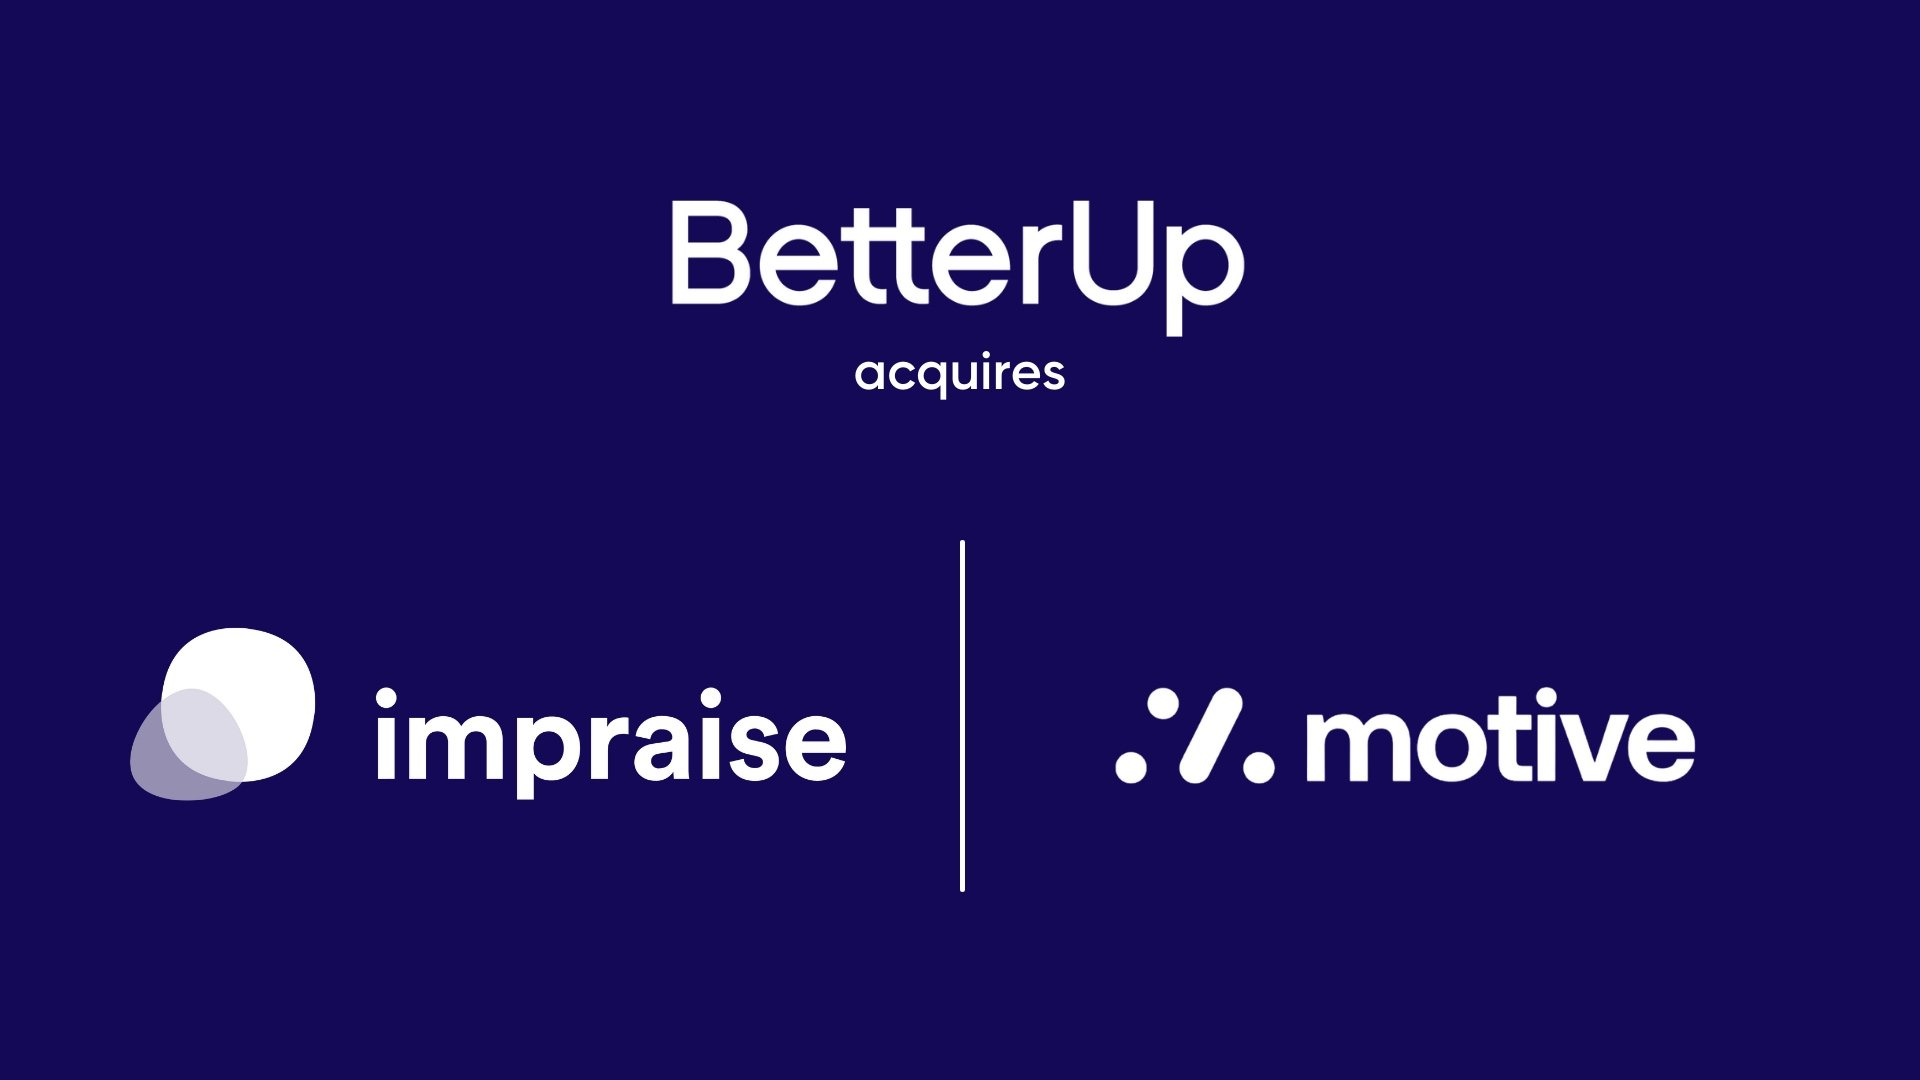 Logos of BetterUp, Motive, and Impraise on a dark blue background